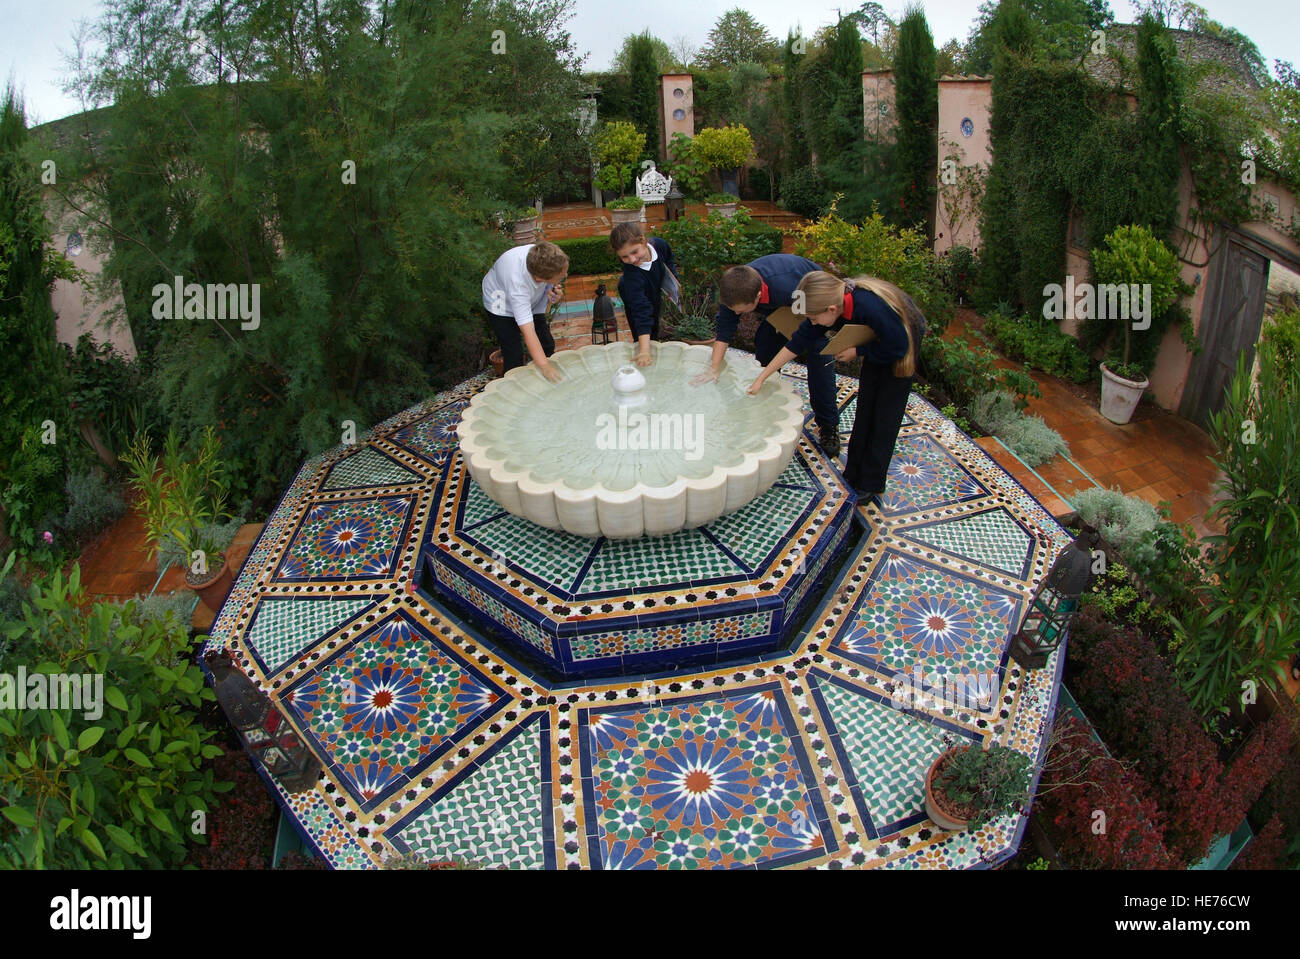 Islamic Gardens And Landscapes Highgrove islamic garden stock photos highgrove islamic garden schoolchildren visiting the islamic garden at highgrove house which was created by hrh the prince workwithnaturefo